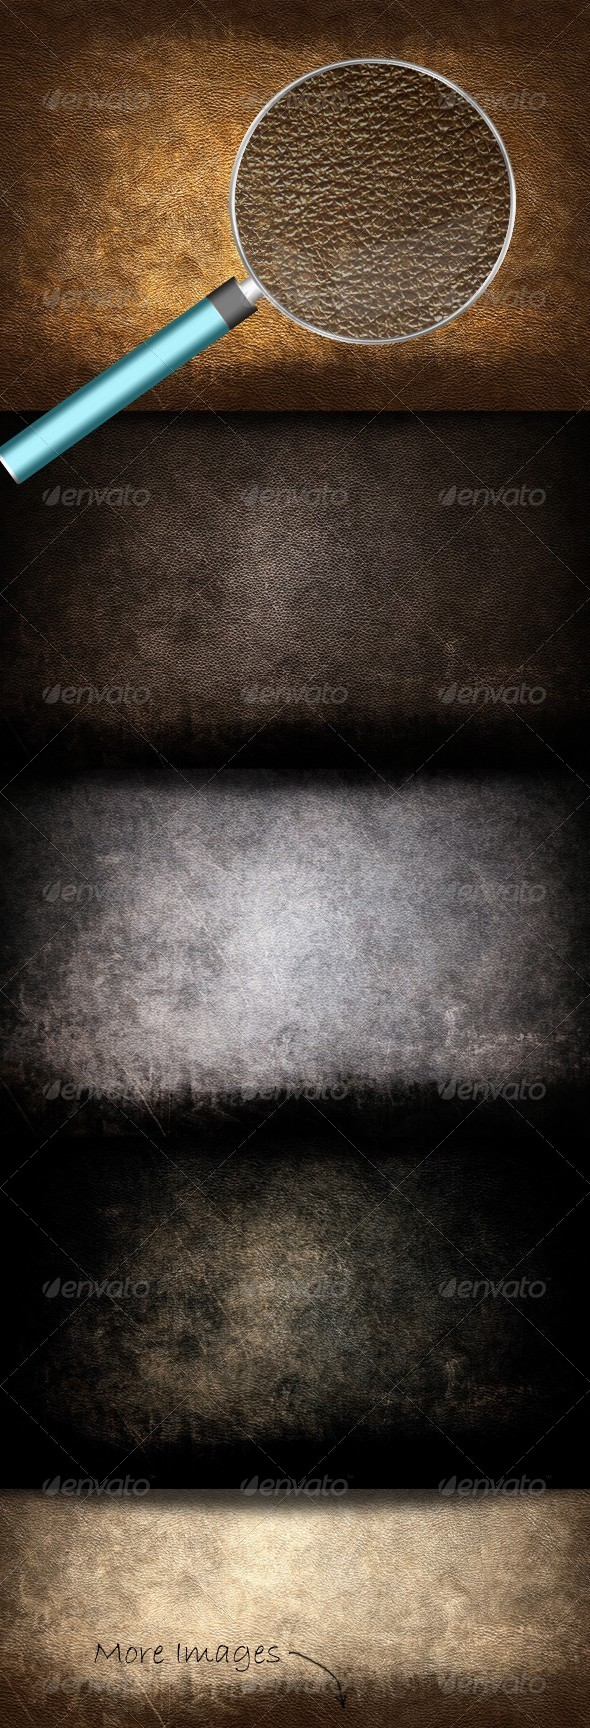 Grunge Leather Textures - Industrial / Grunge Textures